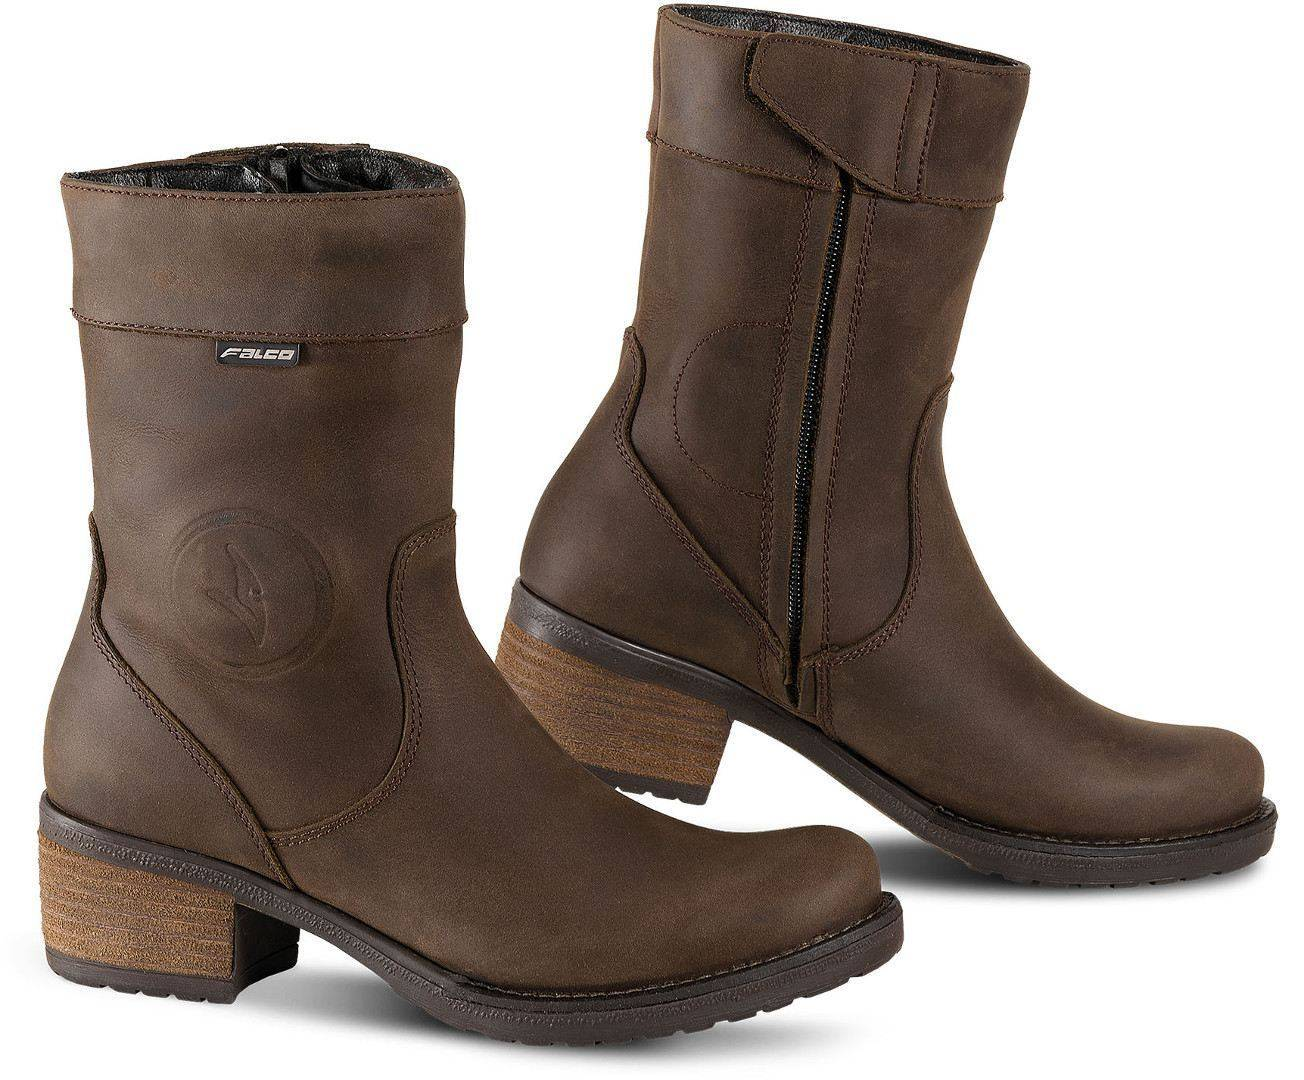 Falco Ayda 2 Ladies Motorcycle Boots  - Size: 37